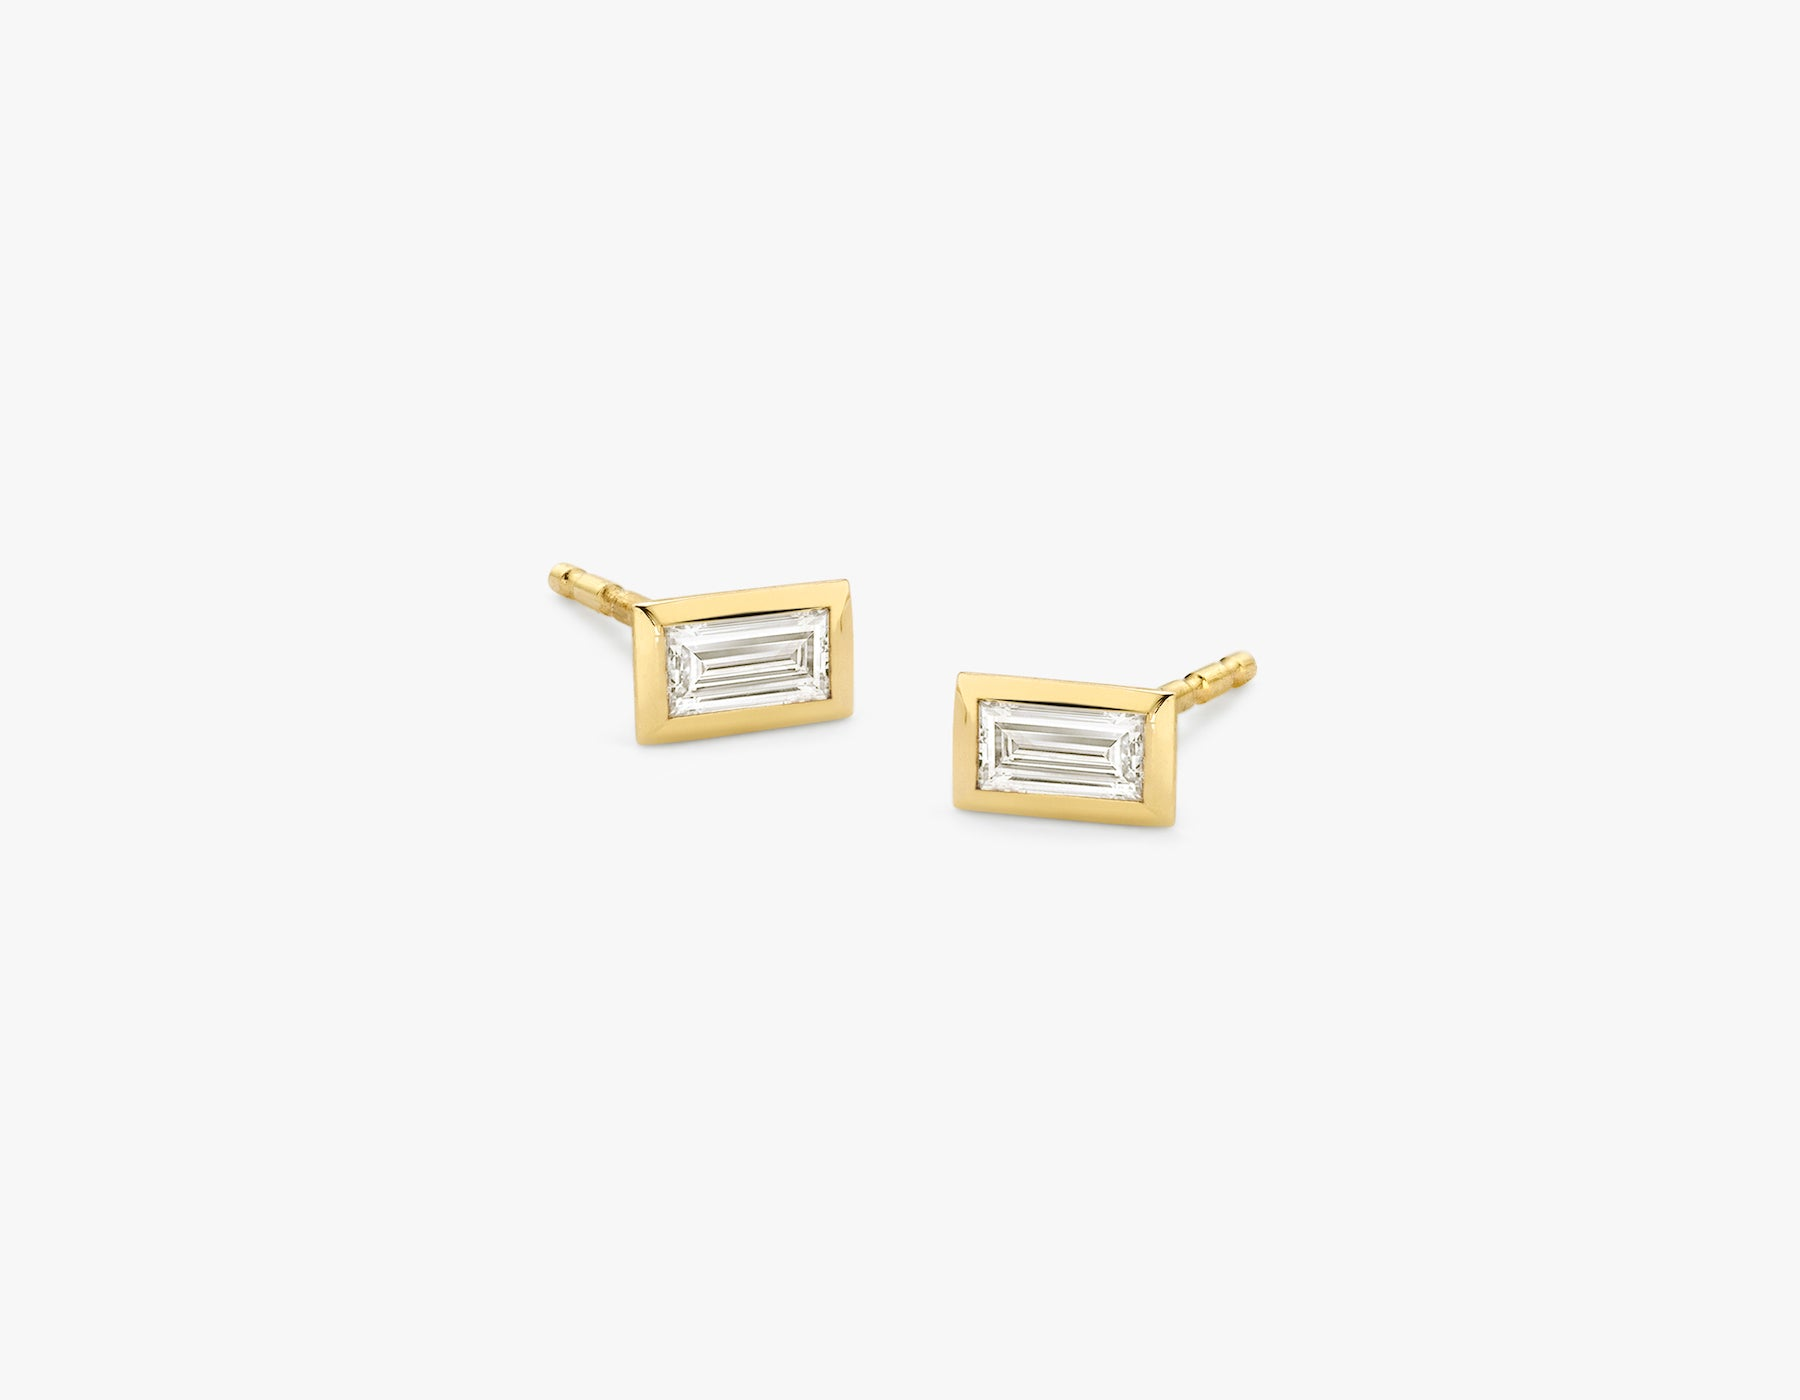 Vrai simple minimalist Baguette Diamond Bezel Earrings, 14K Yellow Gold